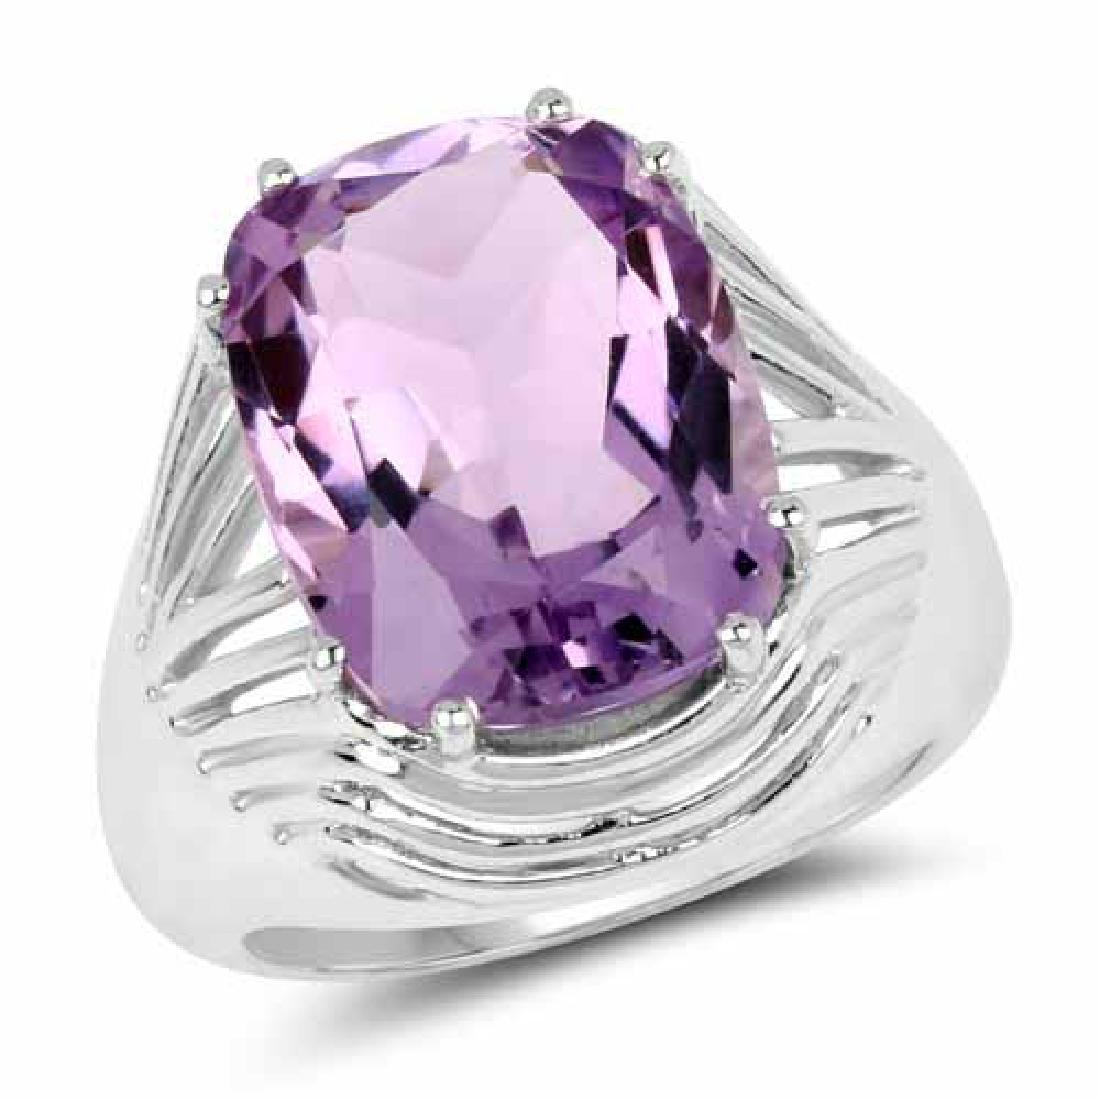 10.02 Carat Genuine Amethyst .925 Sterling Silver Ring